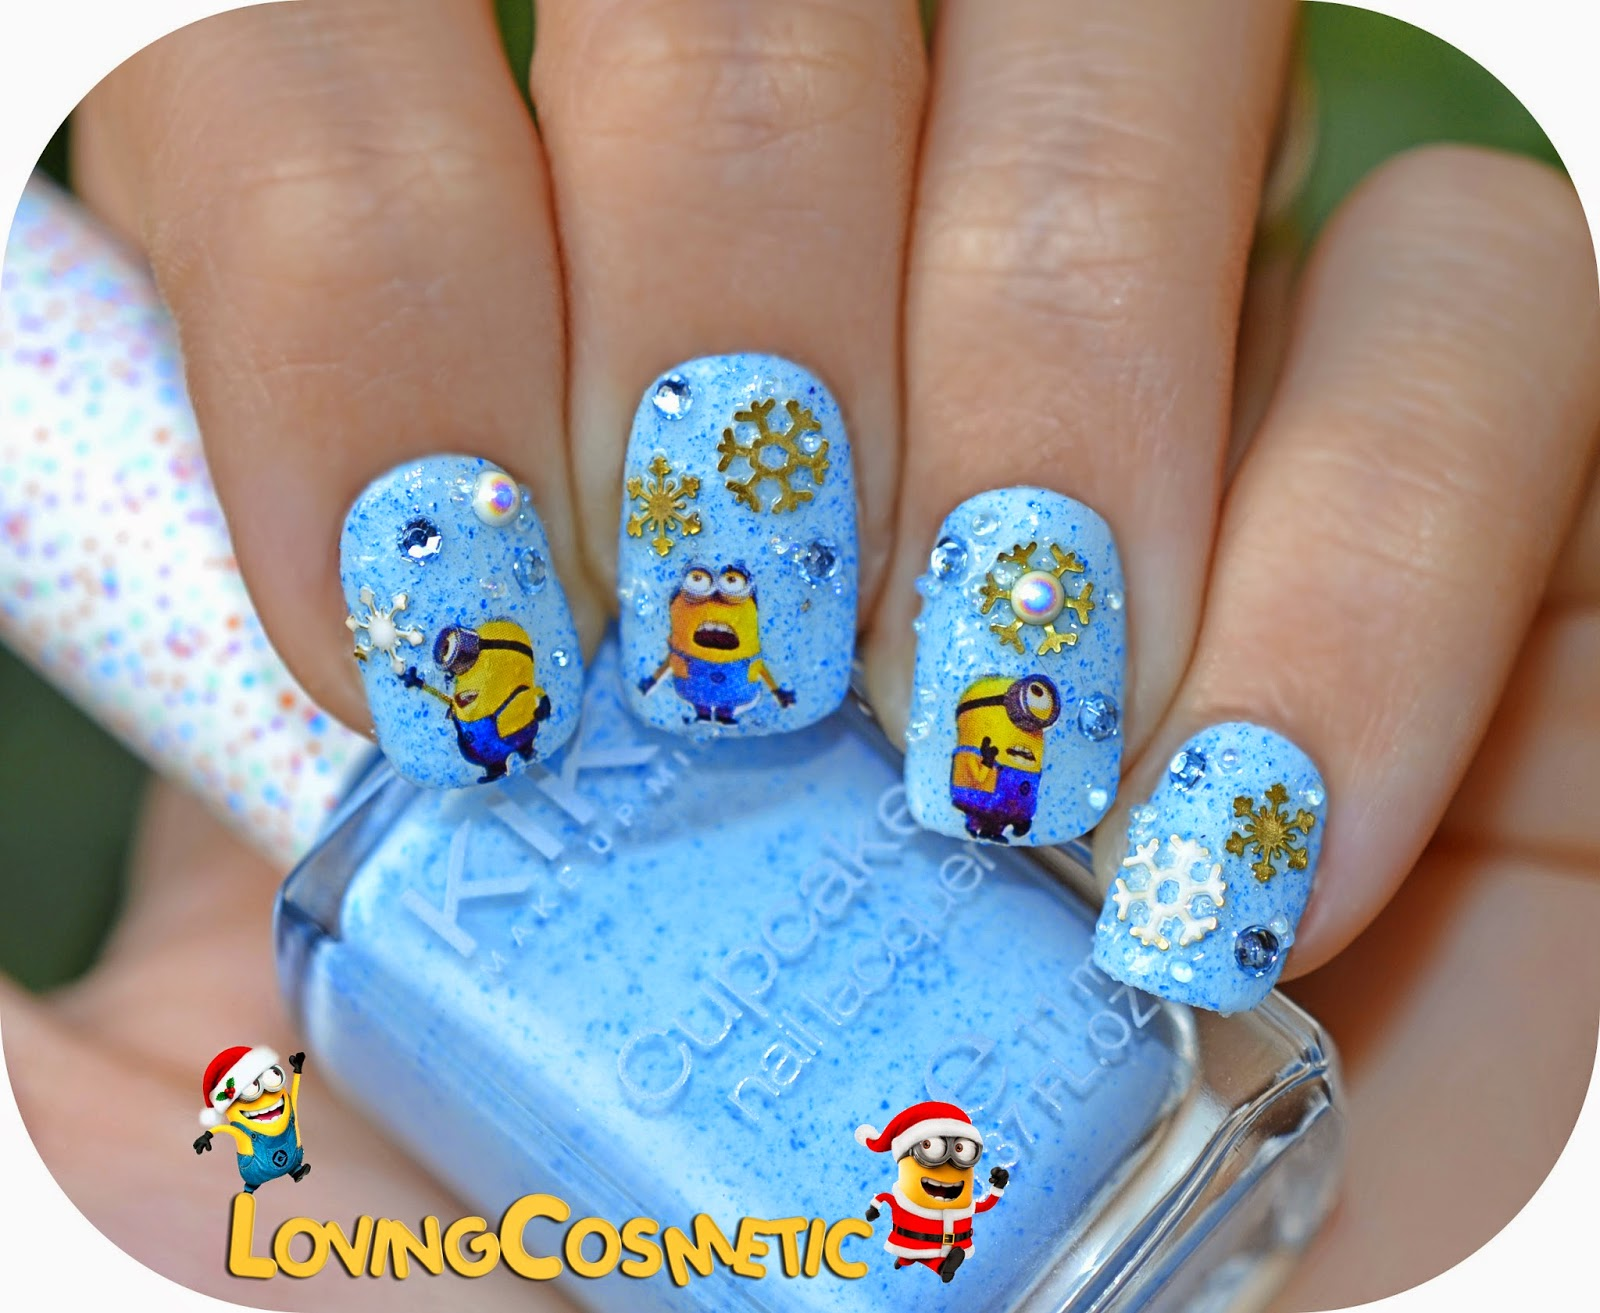 Nail nails nailart art uñas diseño uñas minion minions christmas water decals